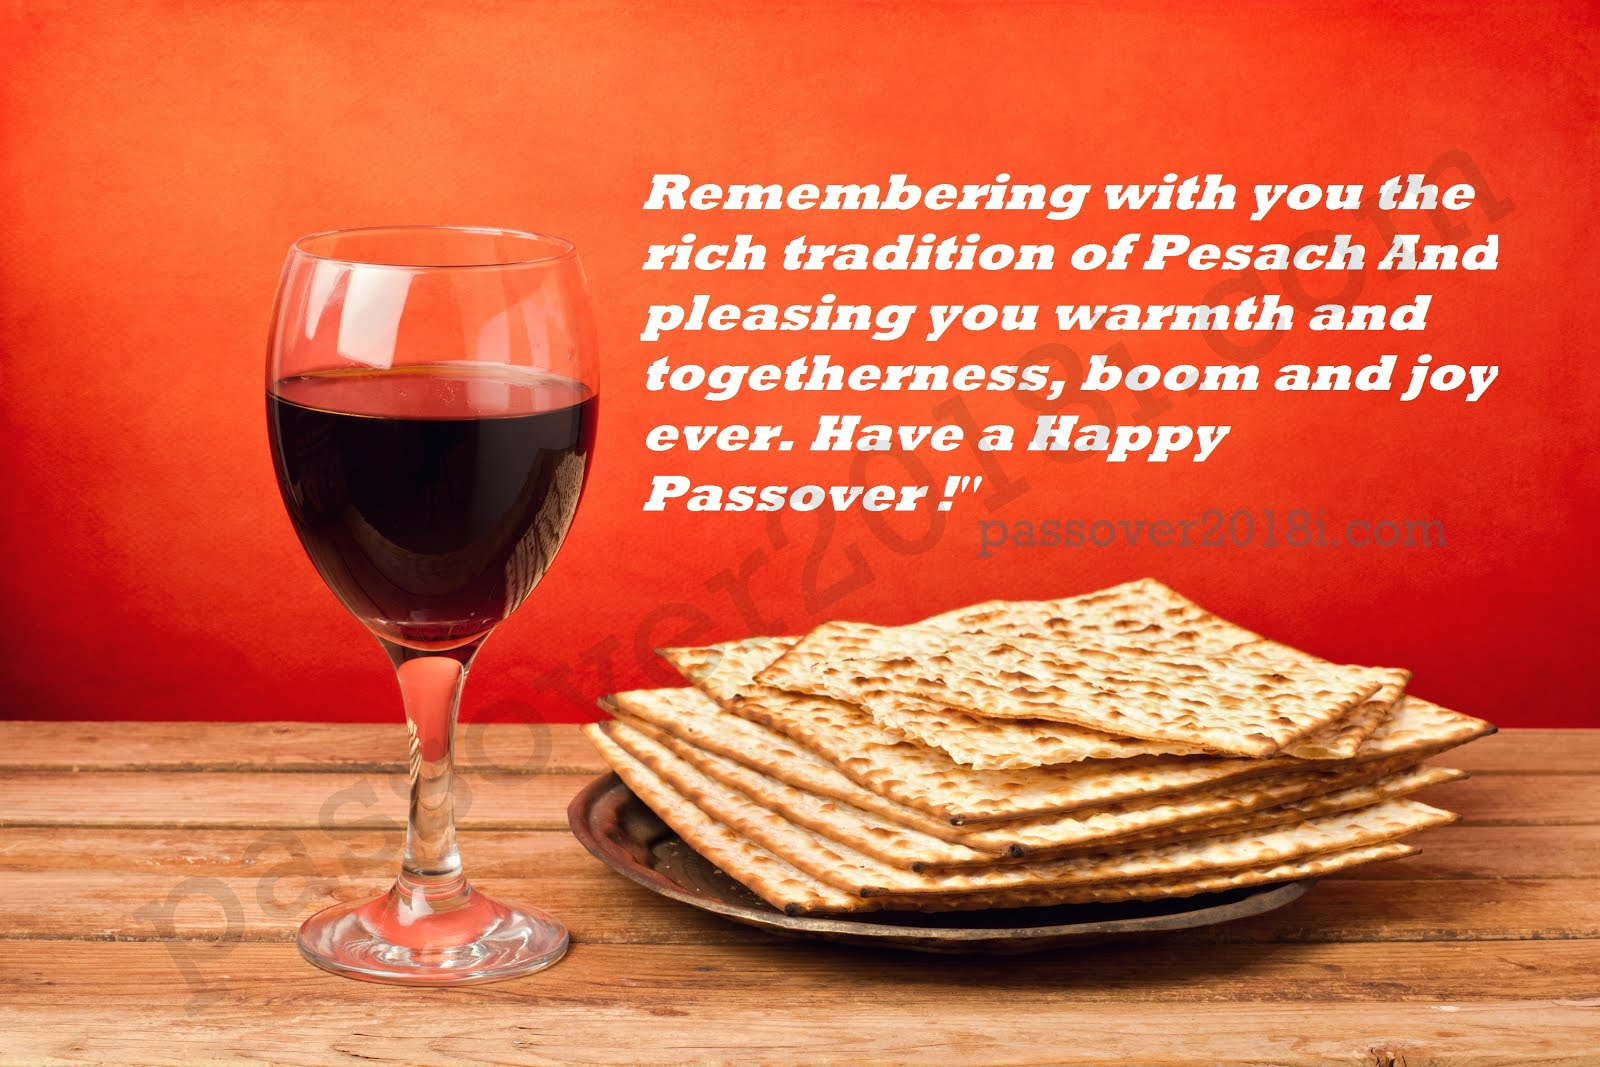 Passover starts messages passover starts 2018 greetings happy happy passover greeting images m4hsunfo